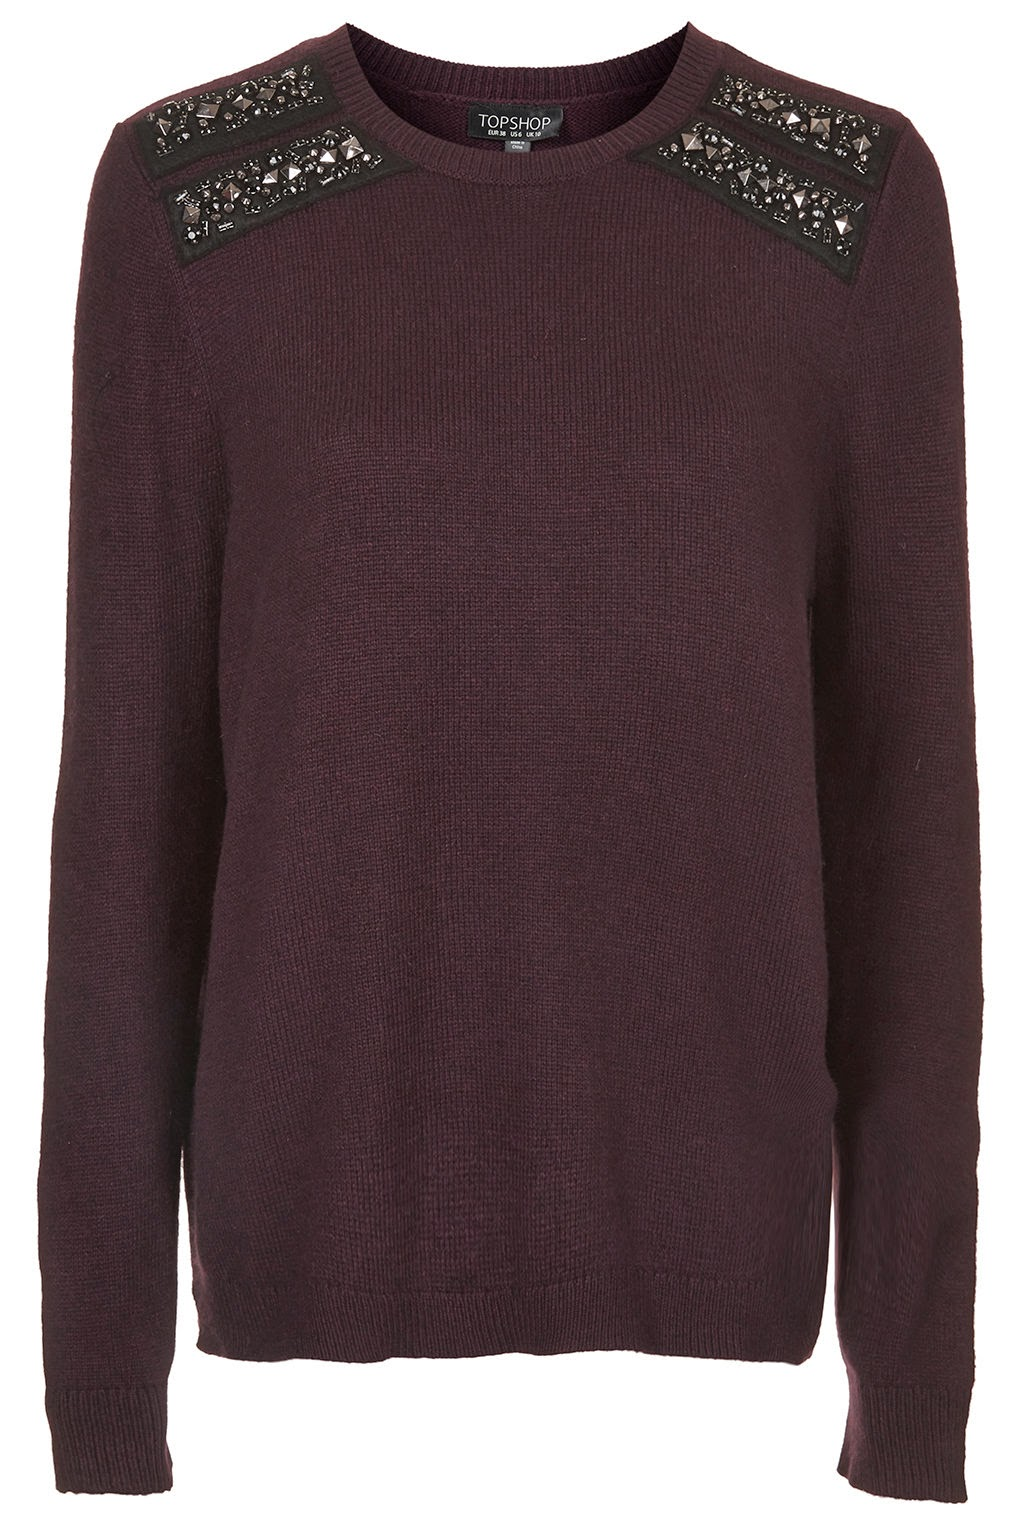 burgundy jumper with shoulder decoration